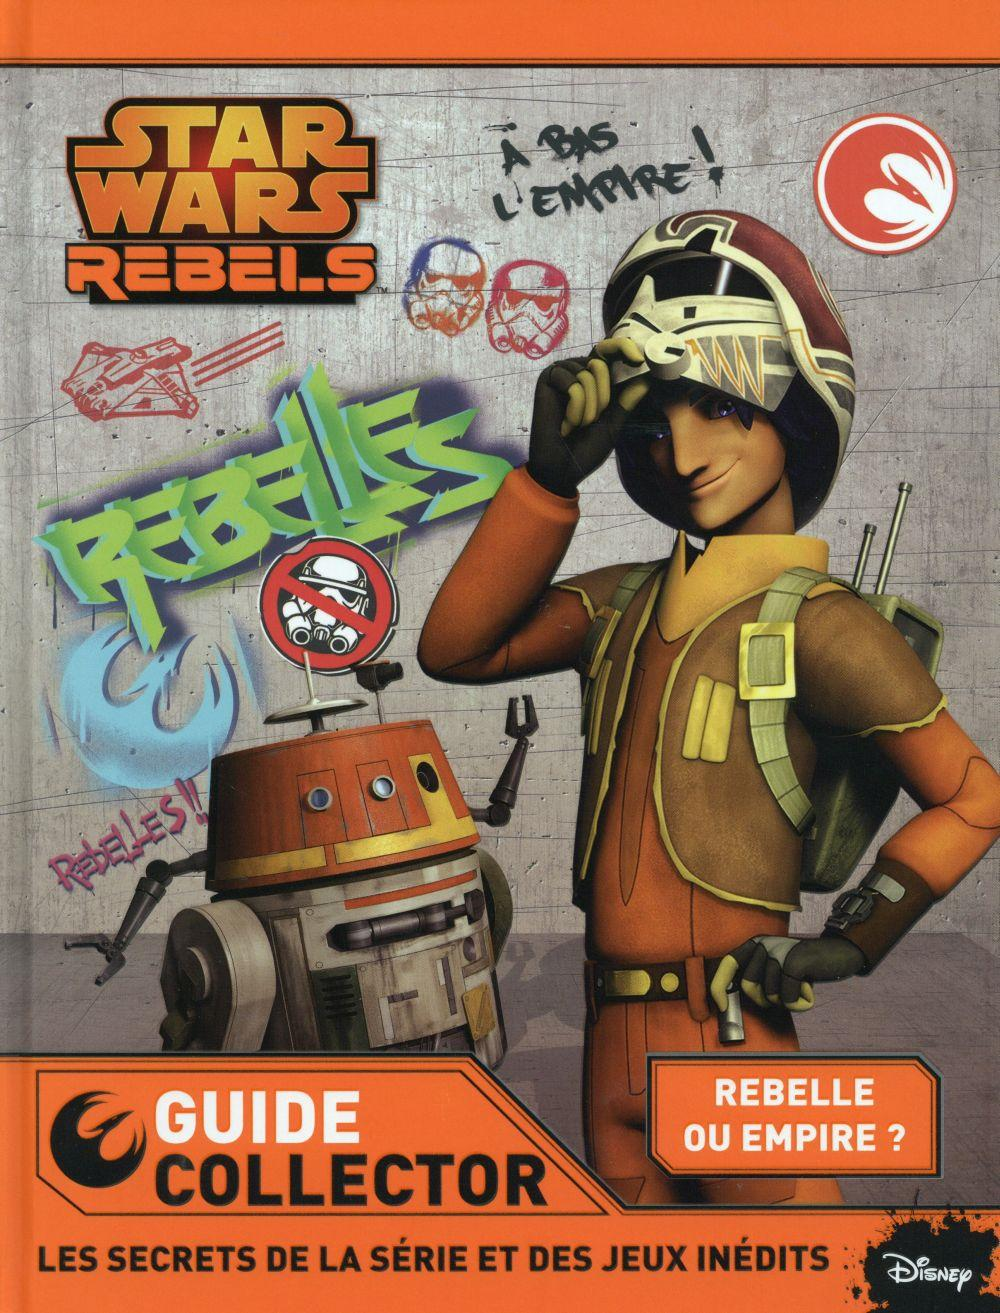 Star Wars rebels ; ton guide collector  - Collectif